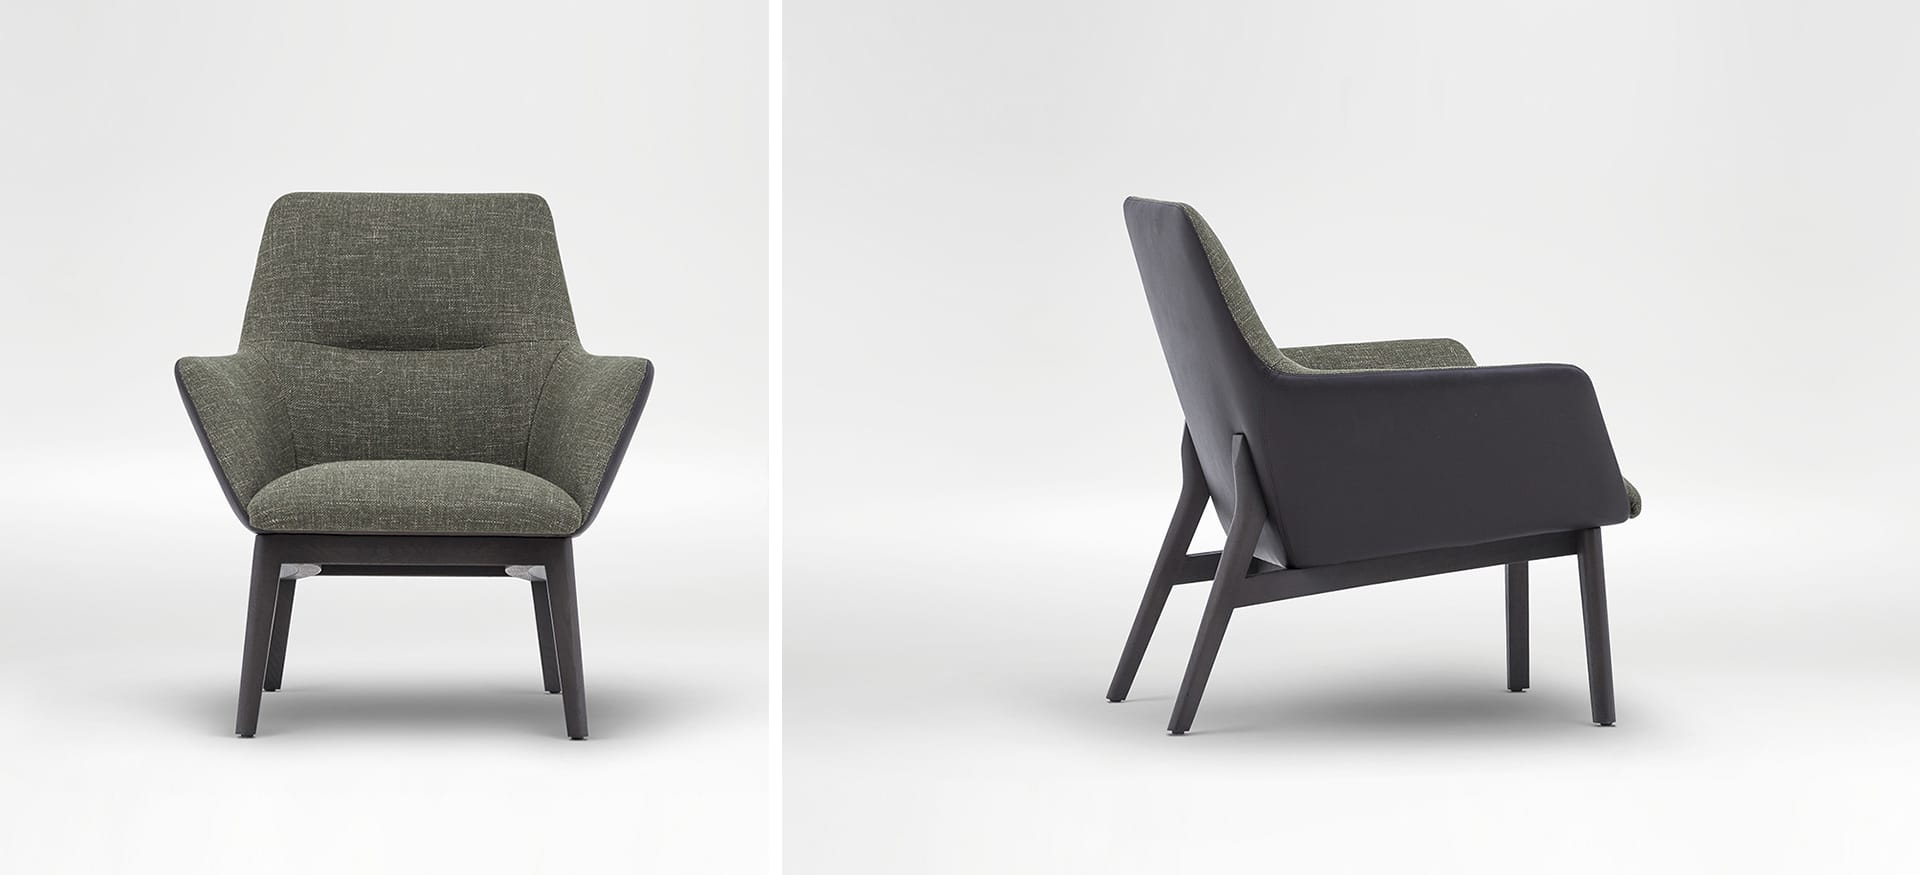 QING LOUNGE CHAIRS